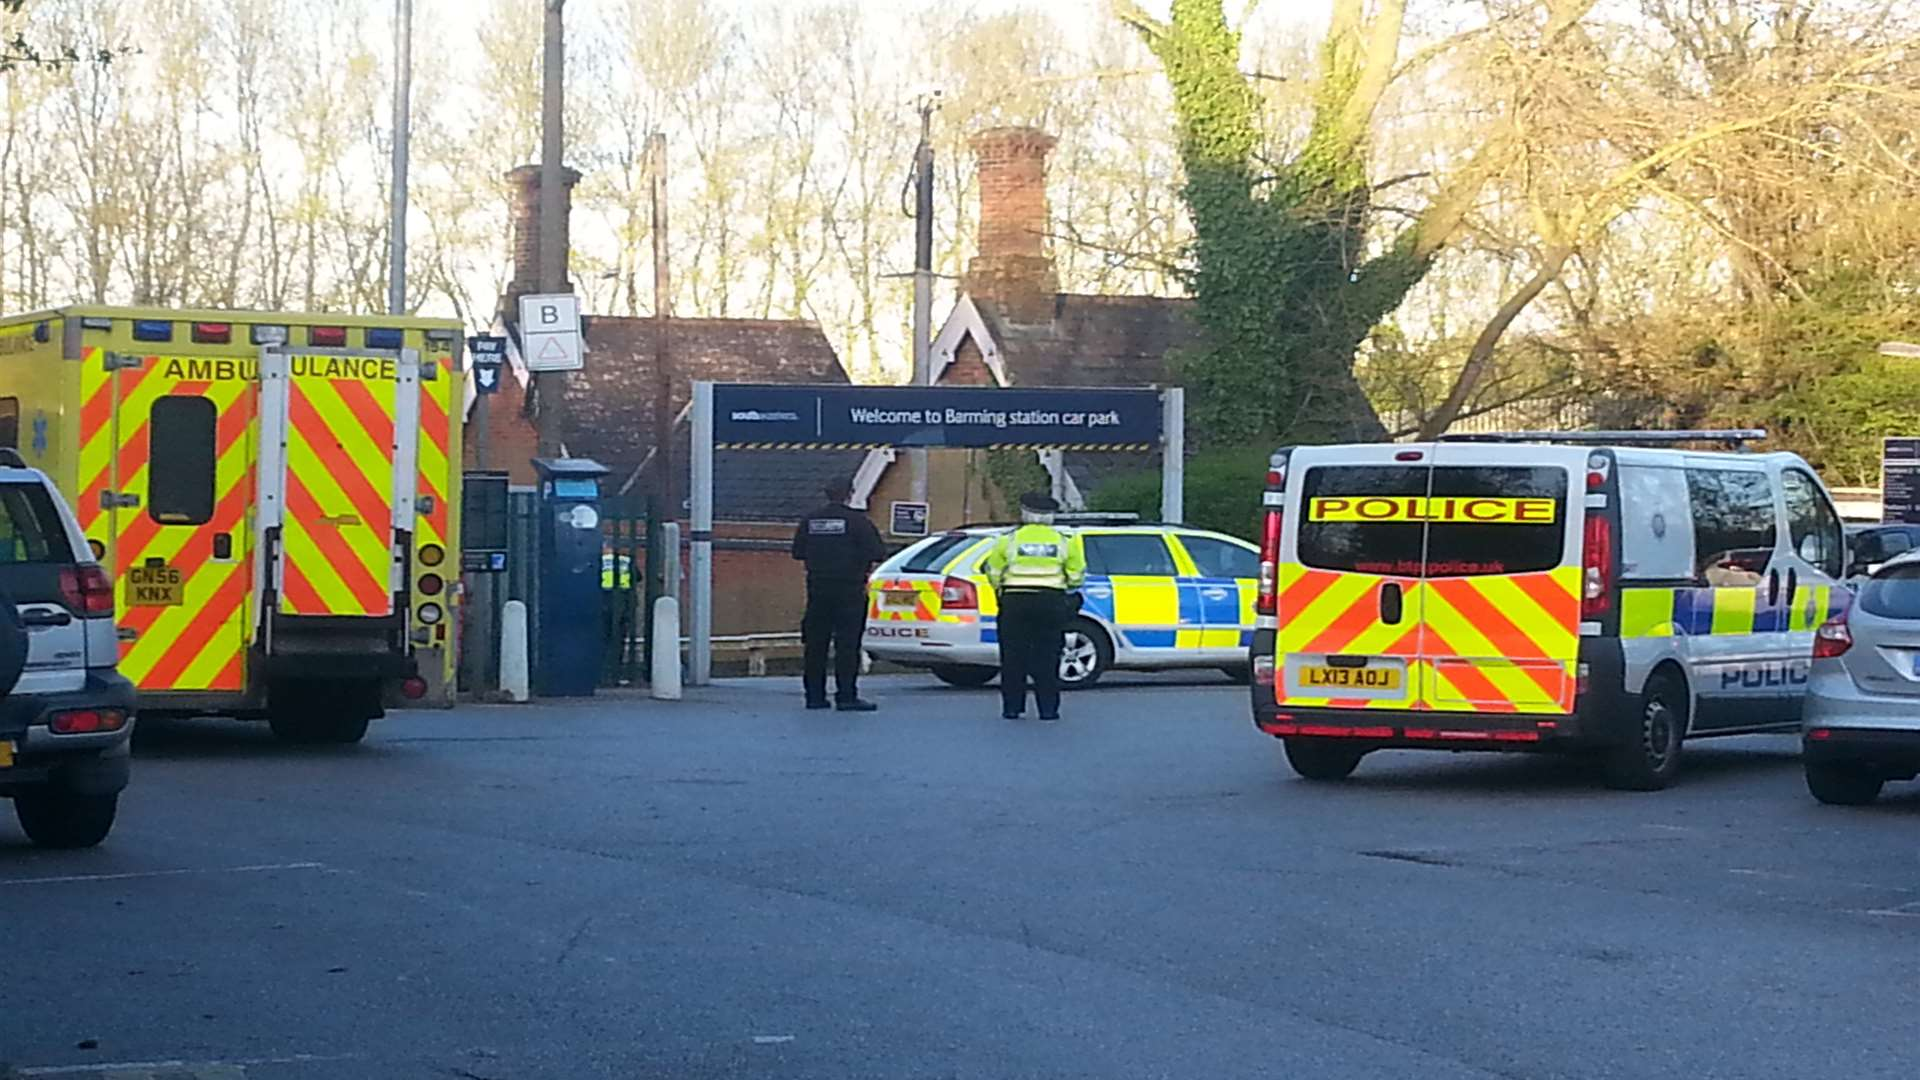 The scene outside Barming Railway Station after the tragic death of Natalie Gray